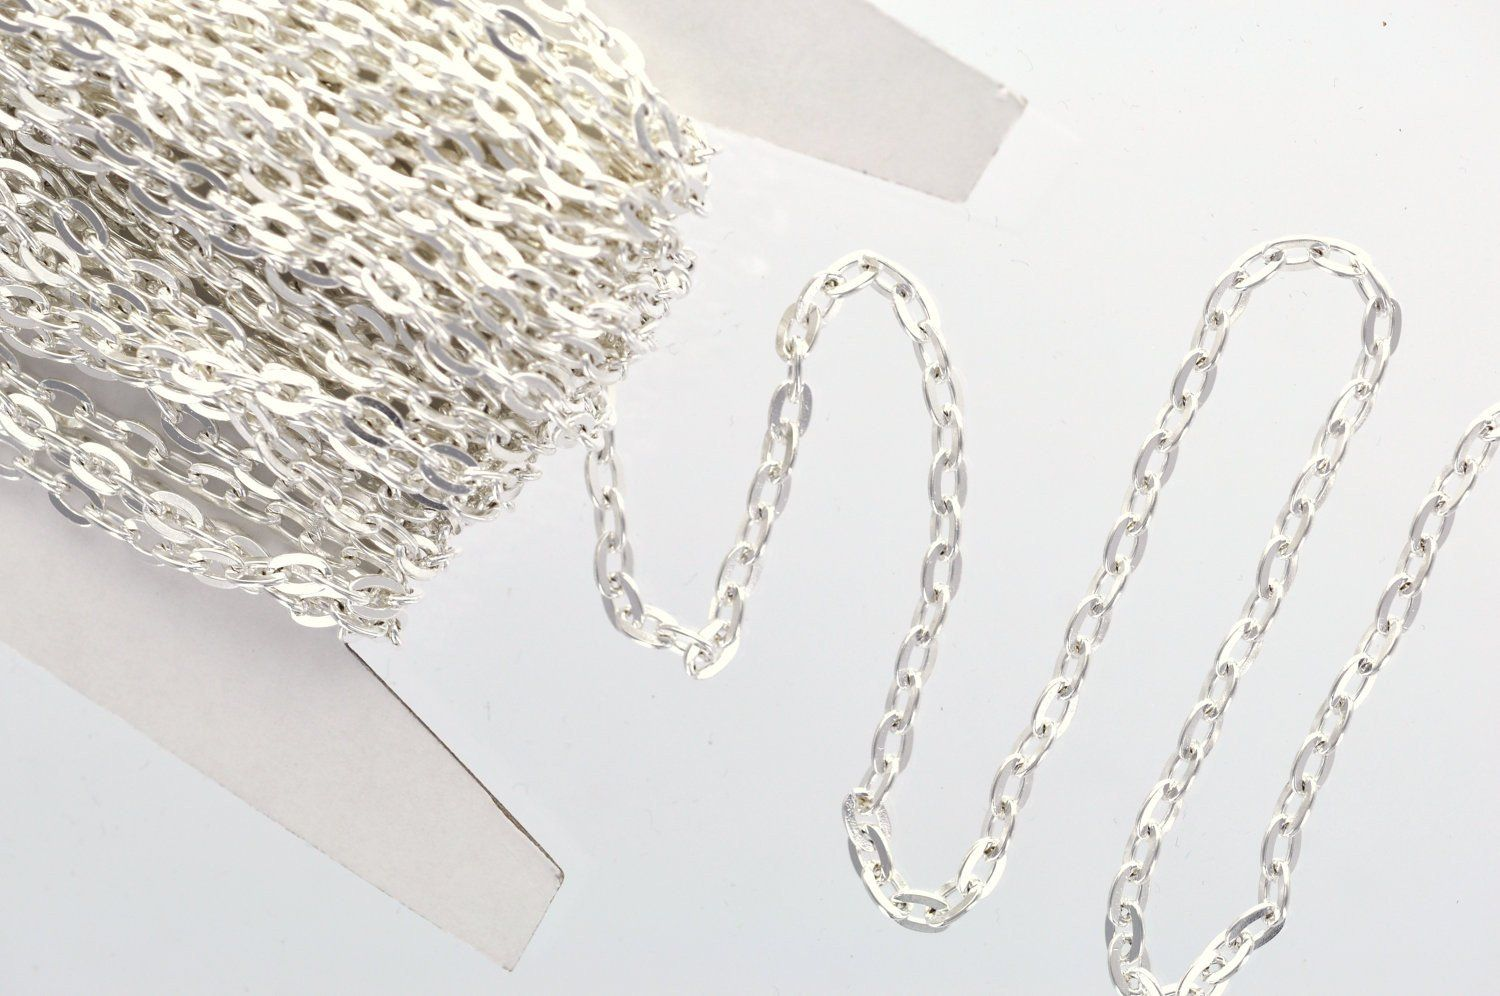 1 yard SILVER PLATED FLAT Link Chain unsoldered links are